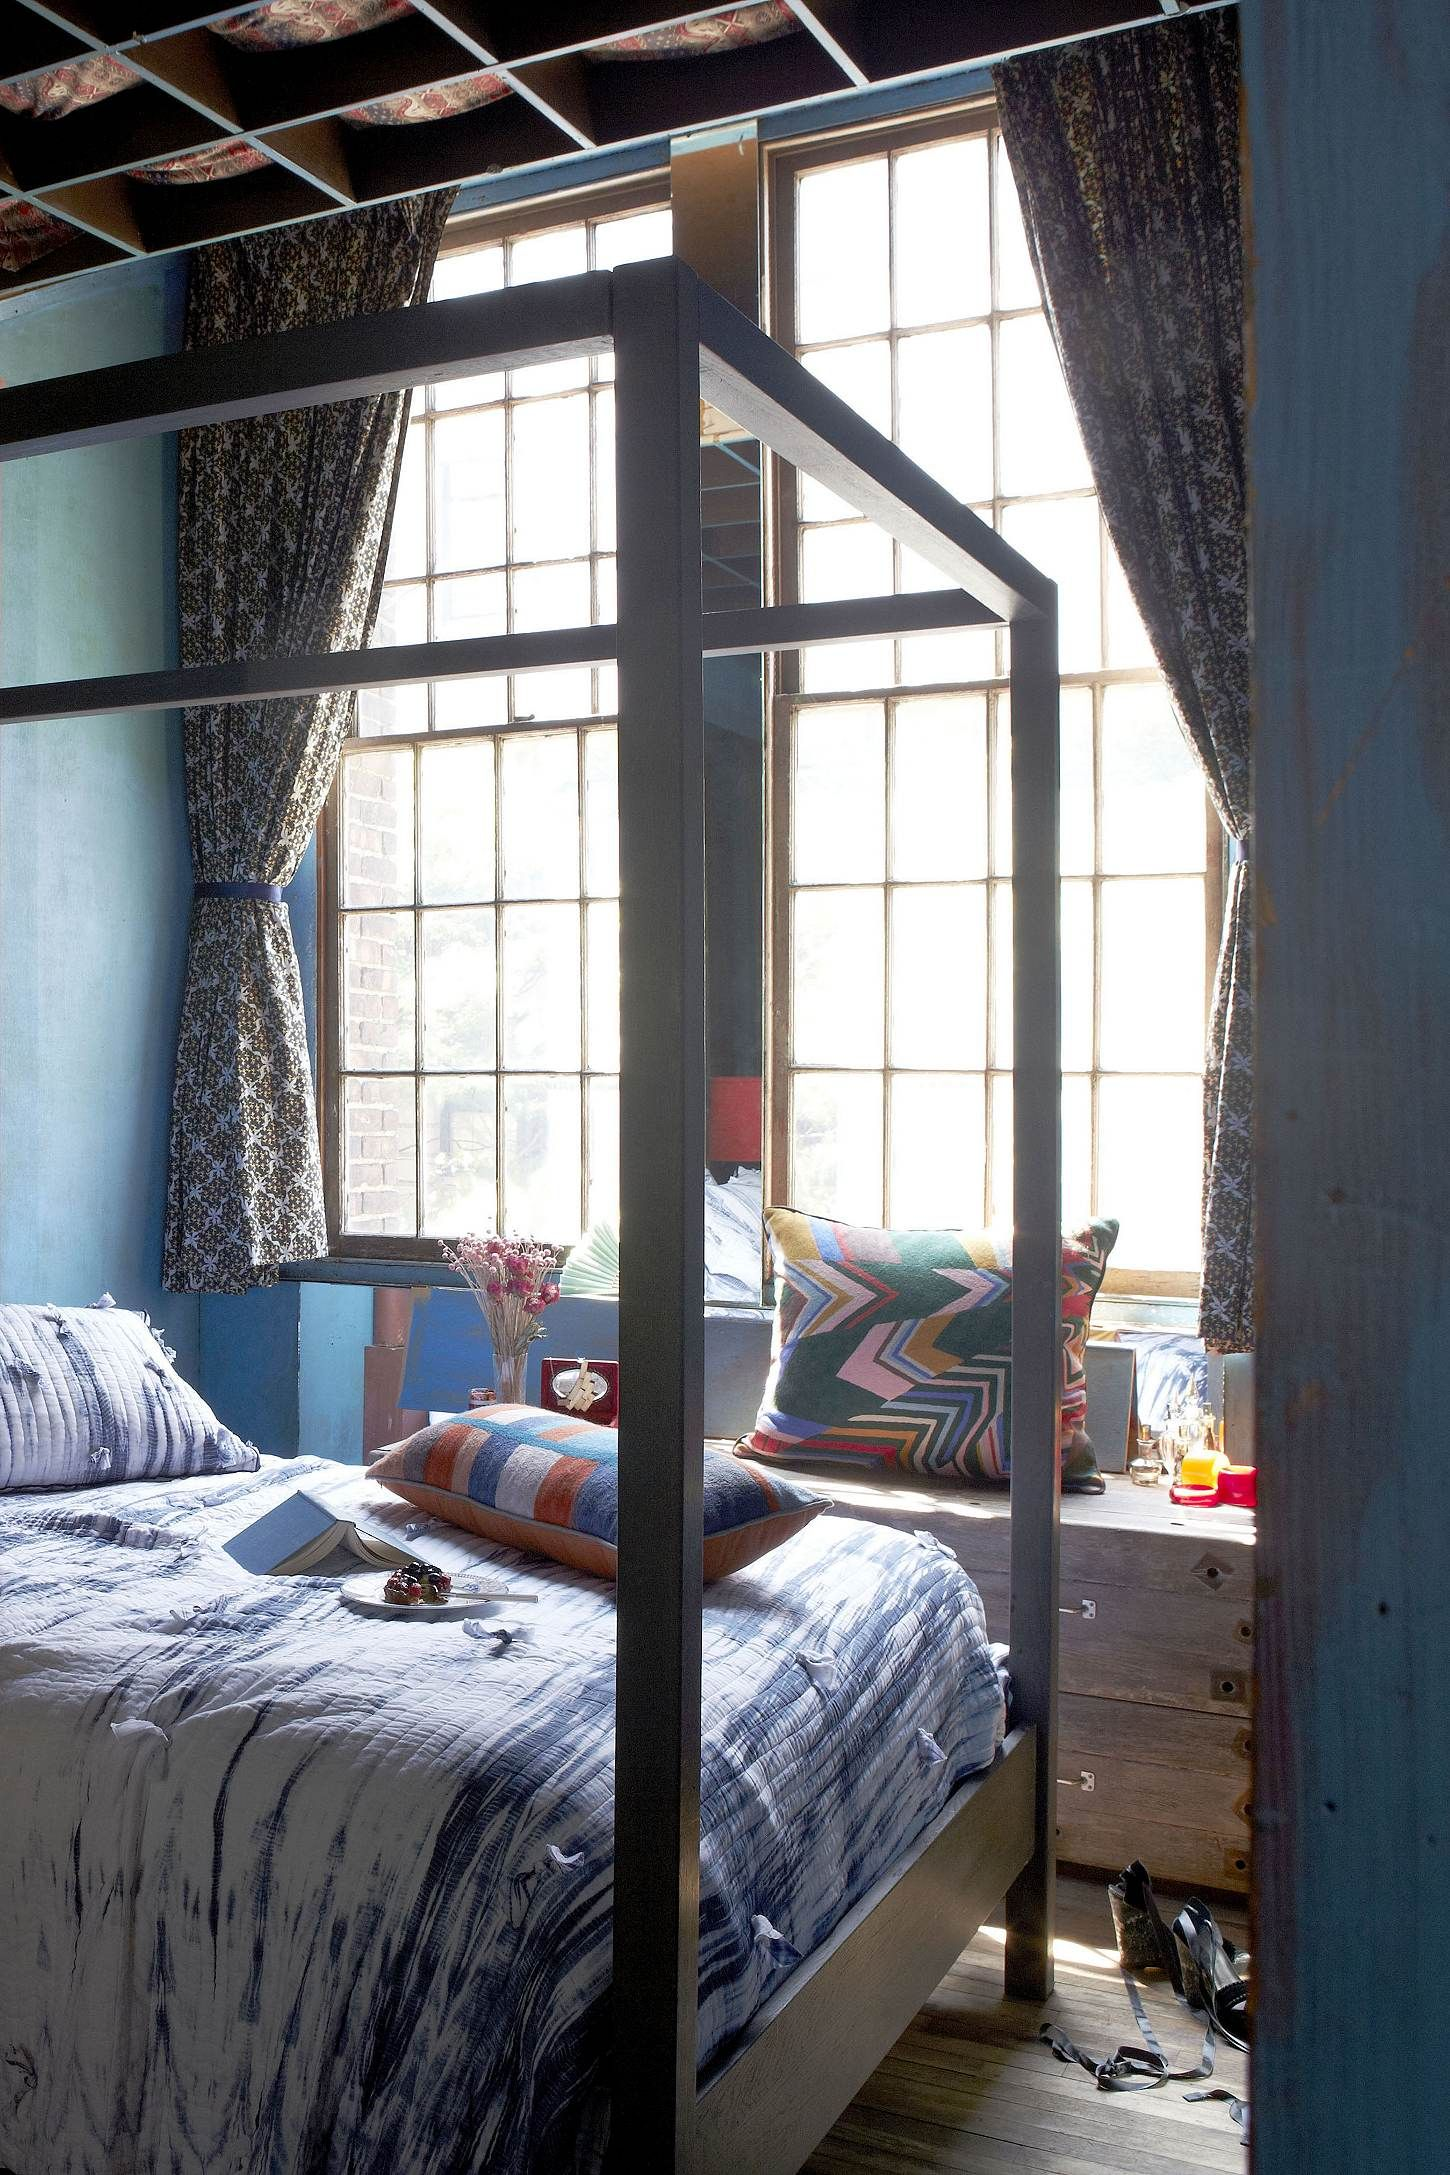 Anthropologie Bedroom: Anthropologie Bedroom- ♥ The 4 Post Bed #anthropologie